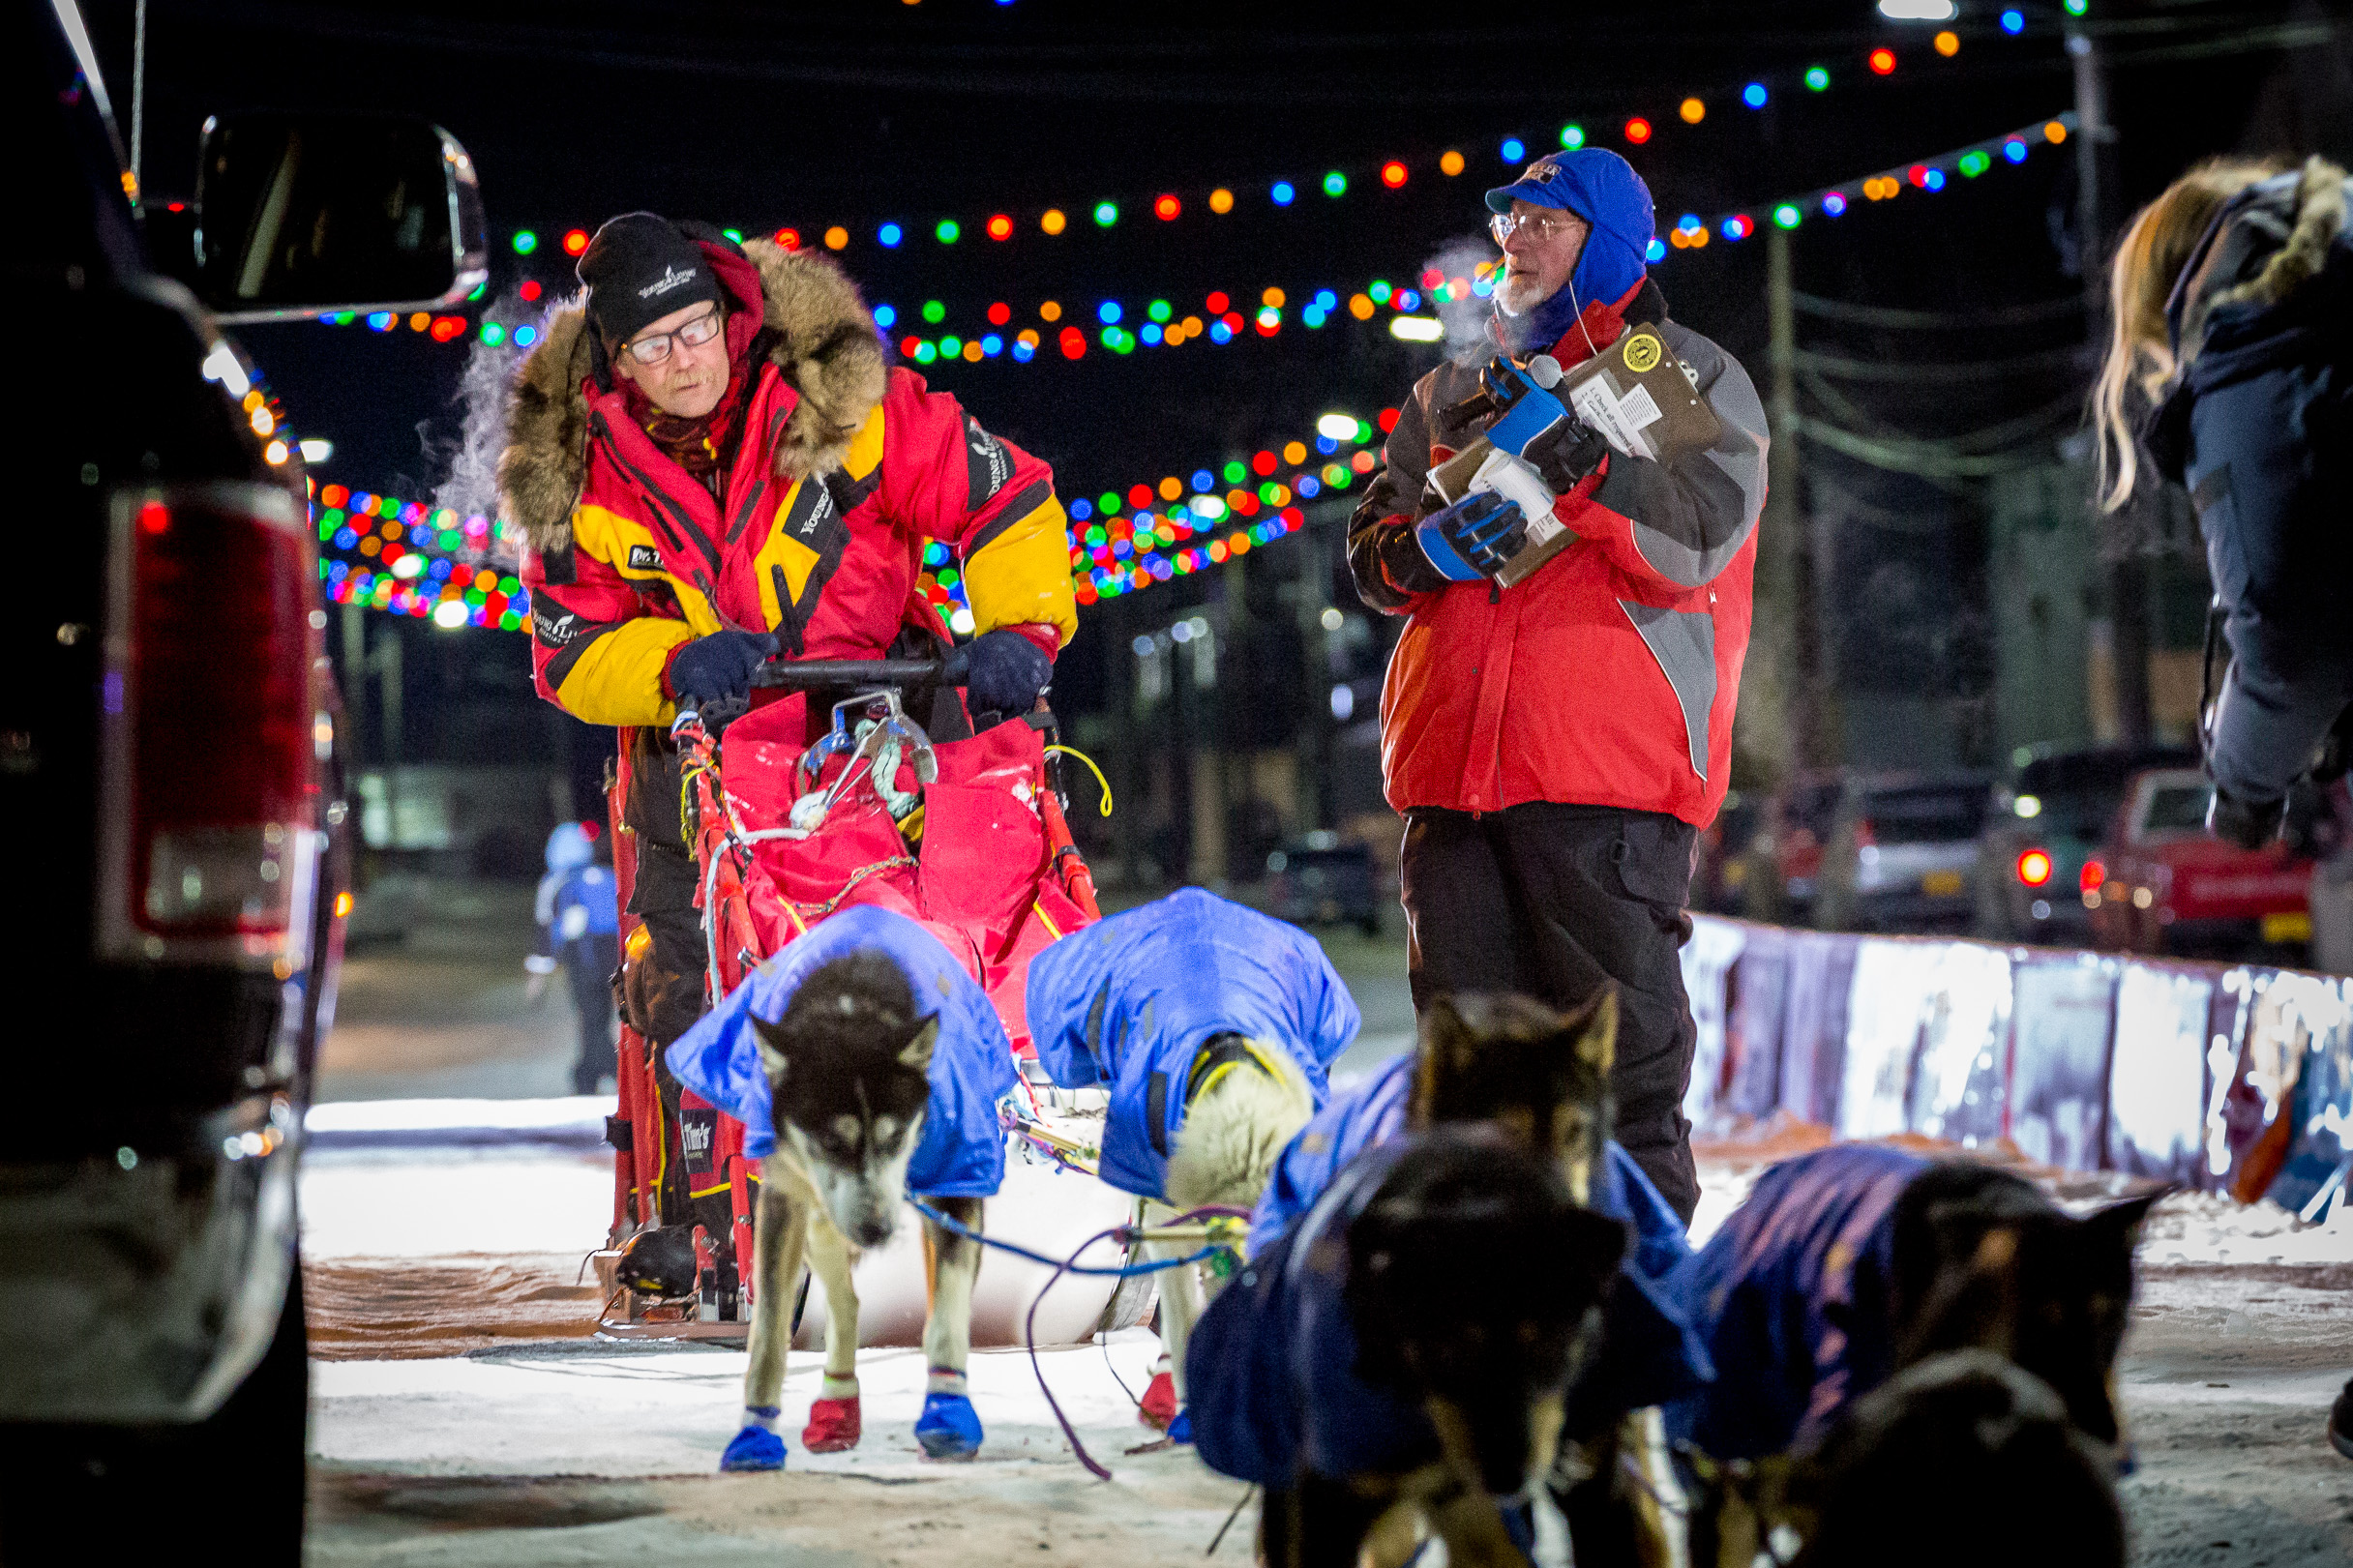 Mitch Seavey finishes the 2016 Iditarod in second place. (Photo by David Dodman/KNOM)